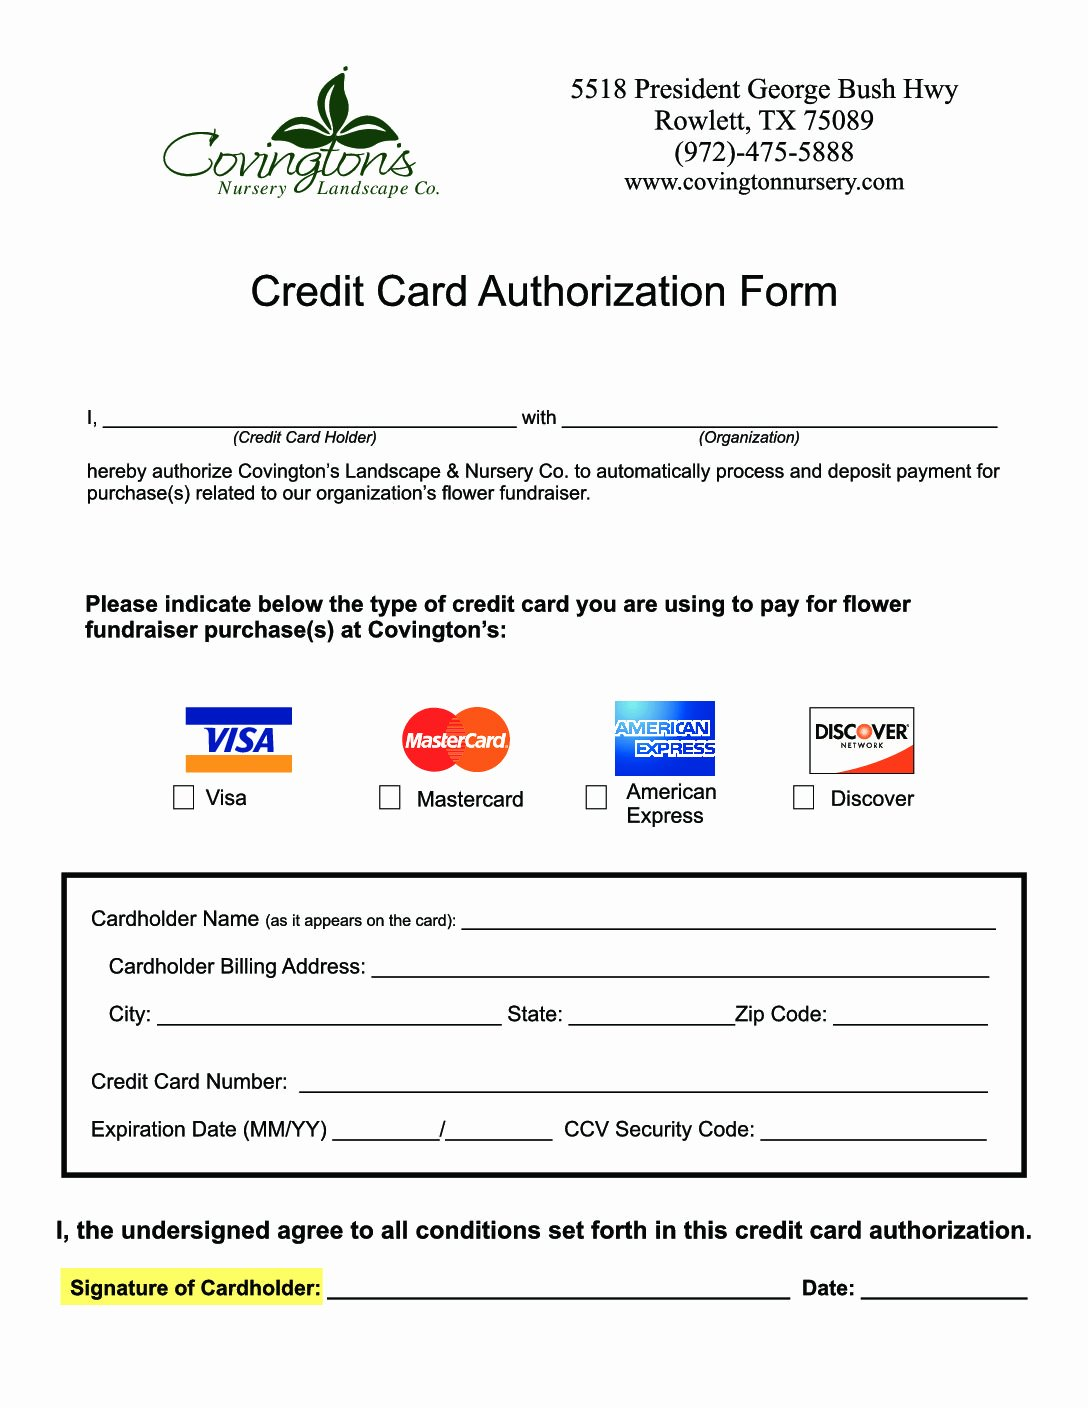 Credit Card Auth form Inspirational Fundraiser Credit Card Authorization form Covingtons